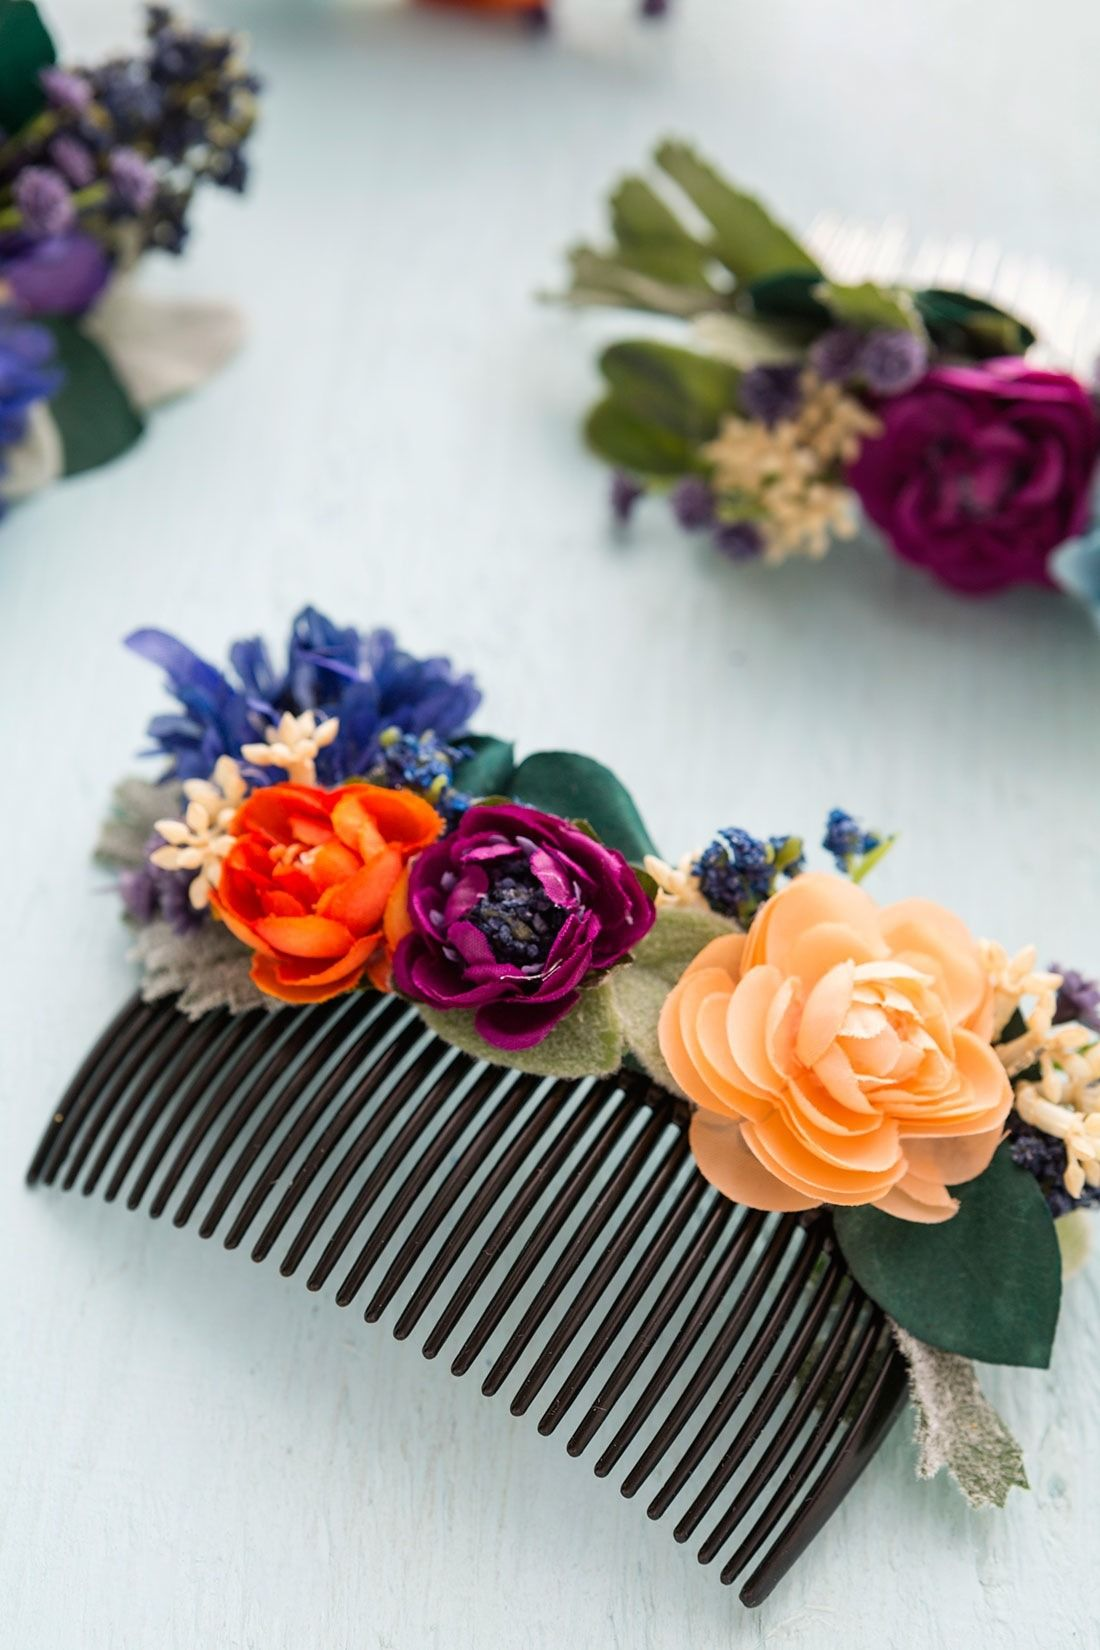 b4a40a81656f Save this step-by-step tutorial to make your own DIY floral hair comb.